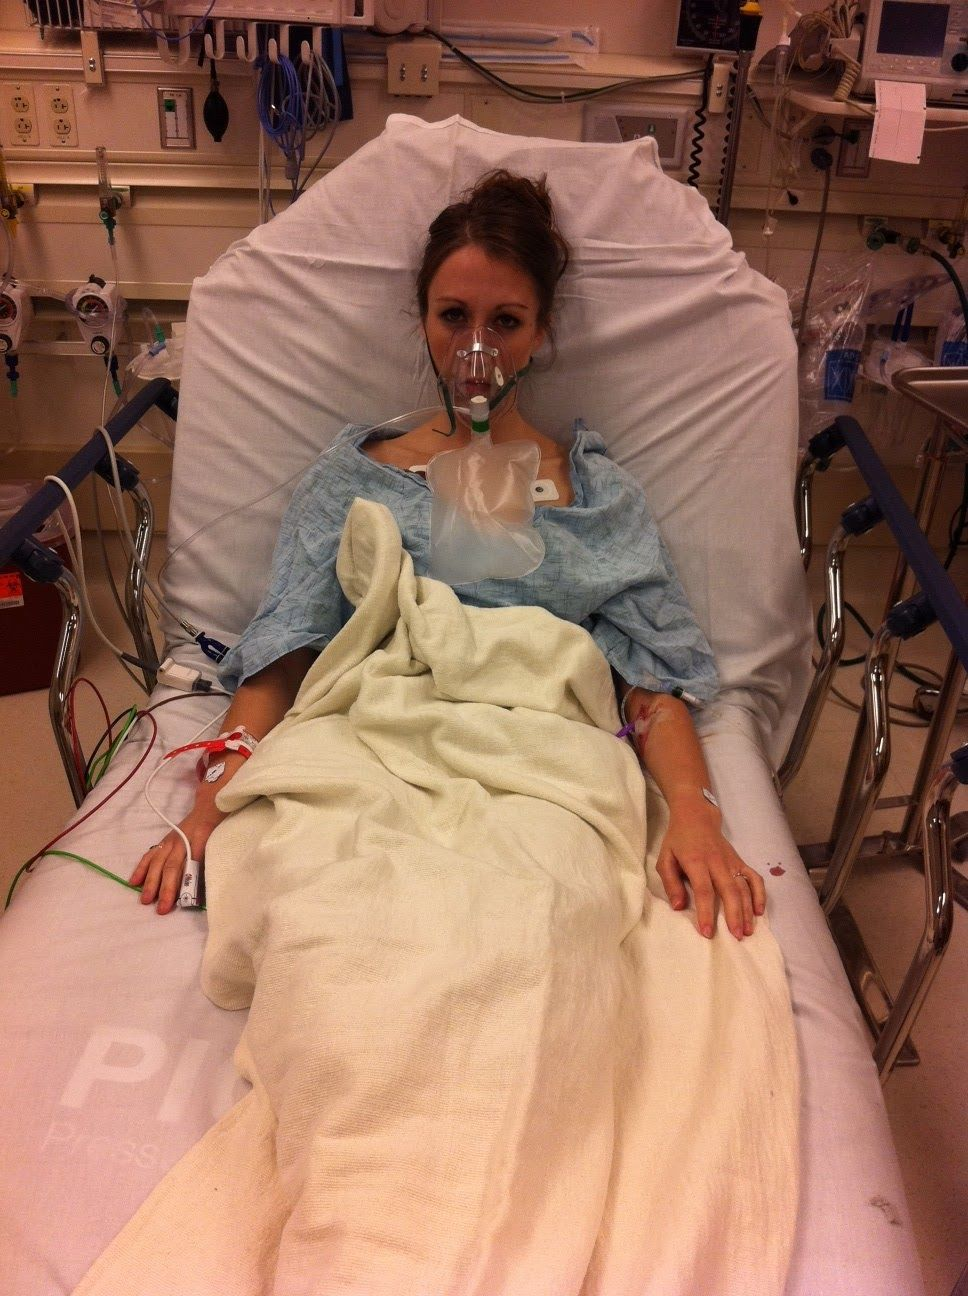 Maggie collapsed lung Lunges, Bruises